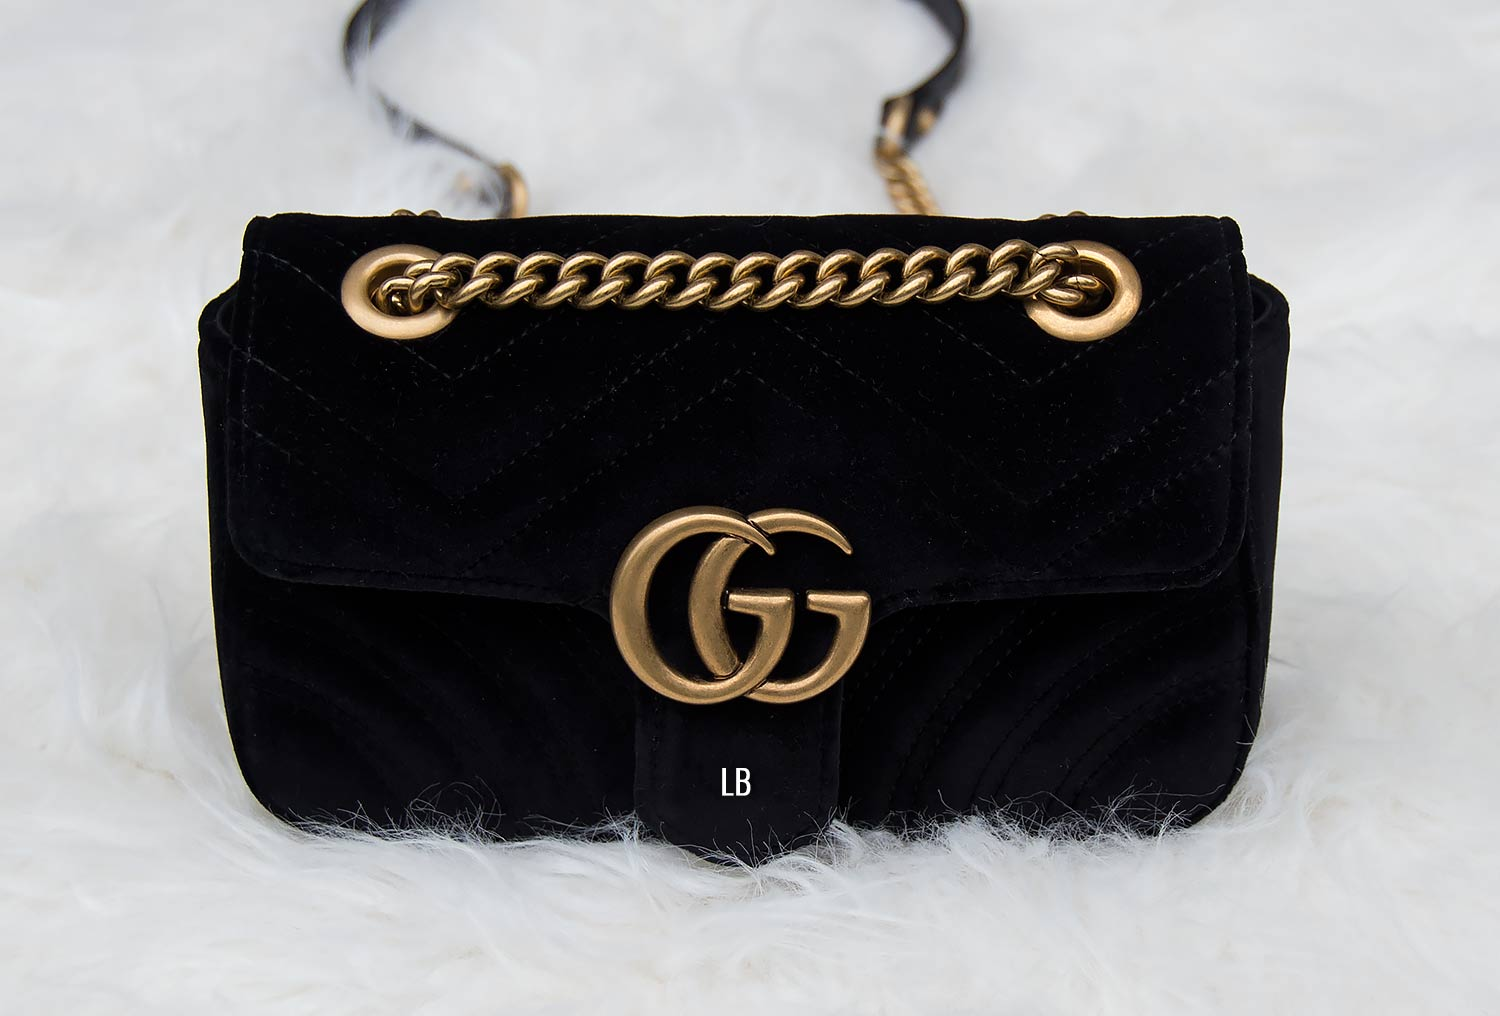 271b7266d Gucci GG Marmont Velvet Mini Bag Review | Raindrops of Sapphire